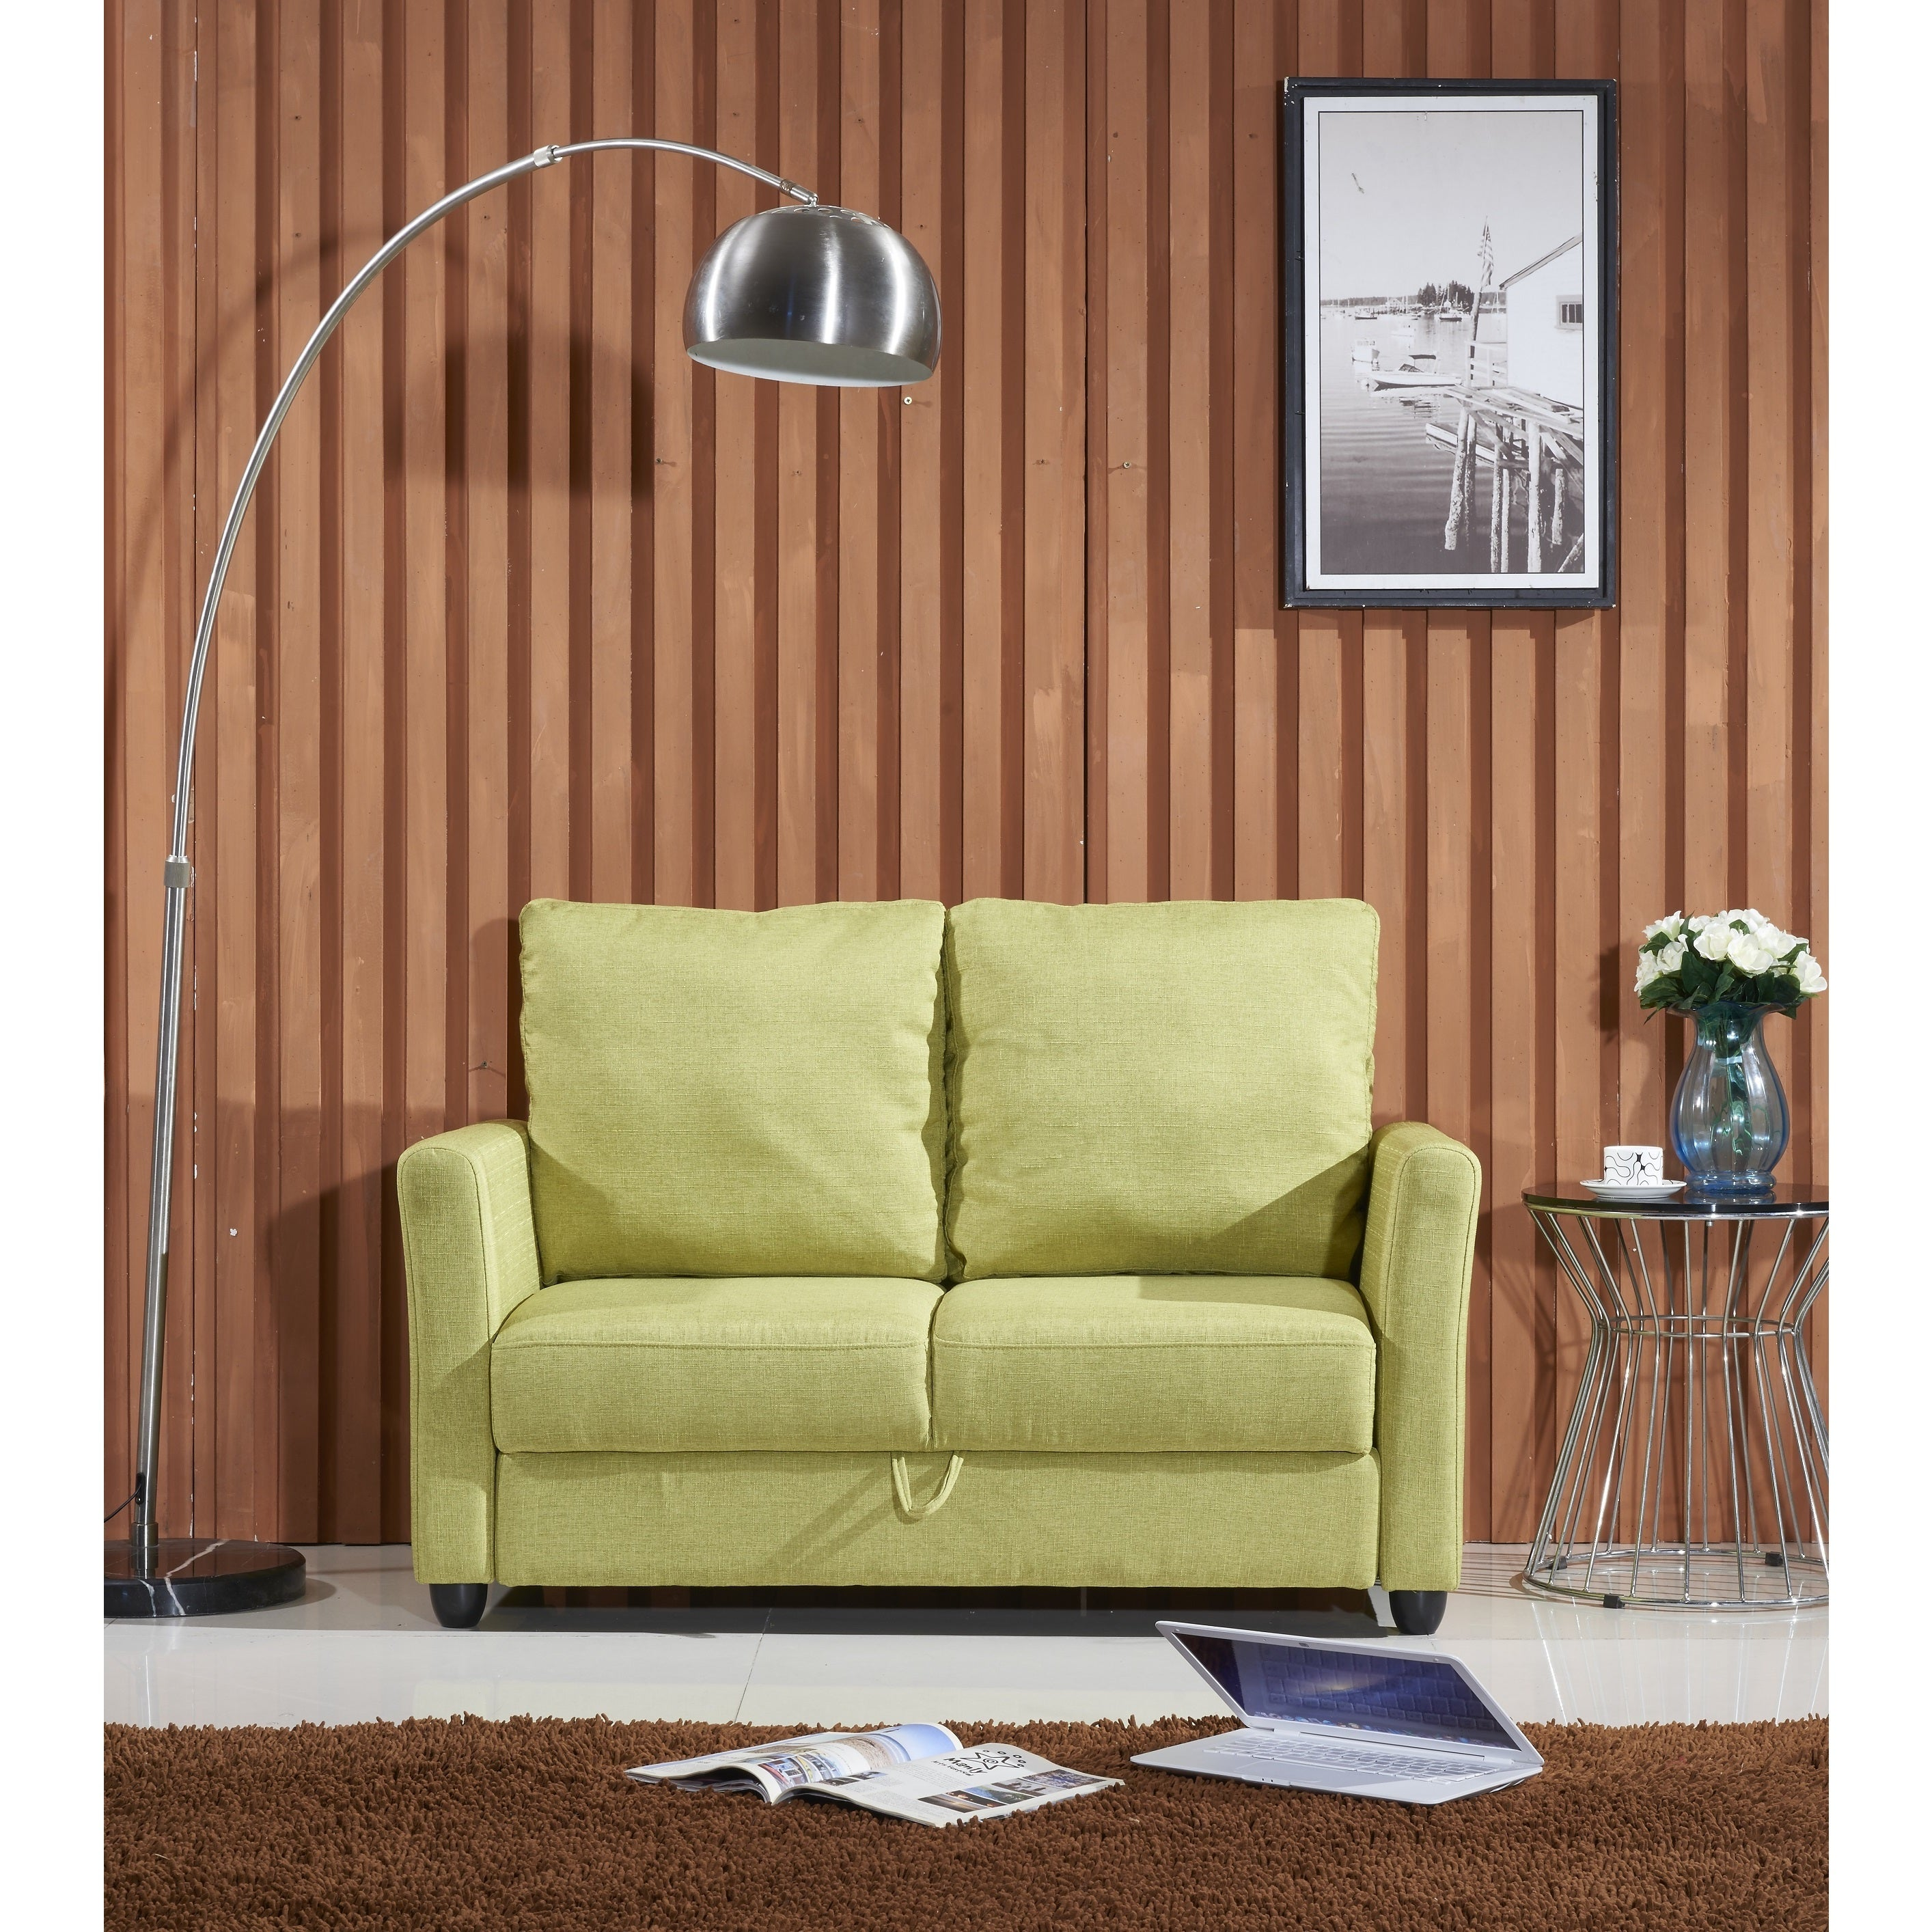 Exceptional Adia Modern Fabric Loveseat With Storage   Free Shipping Today   Overstock    17757007